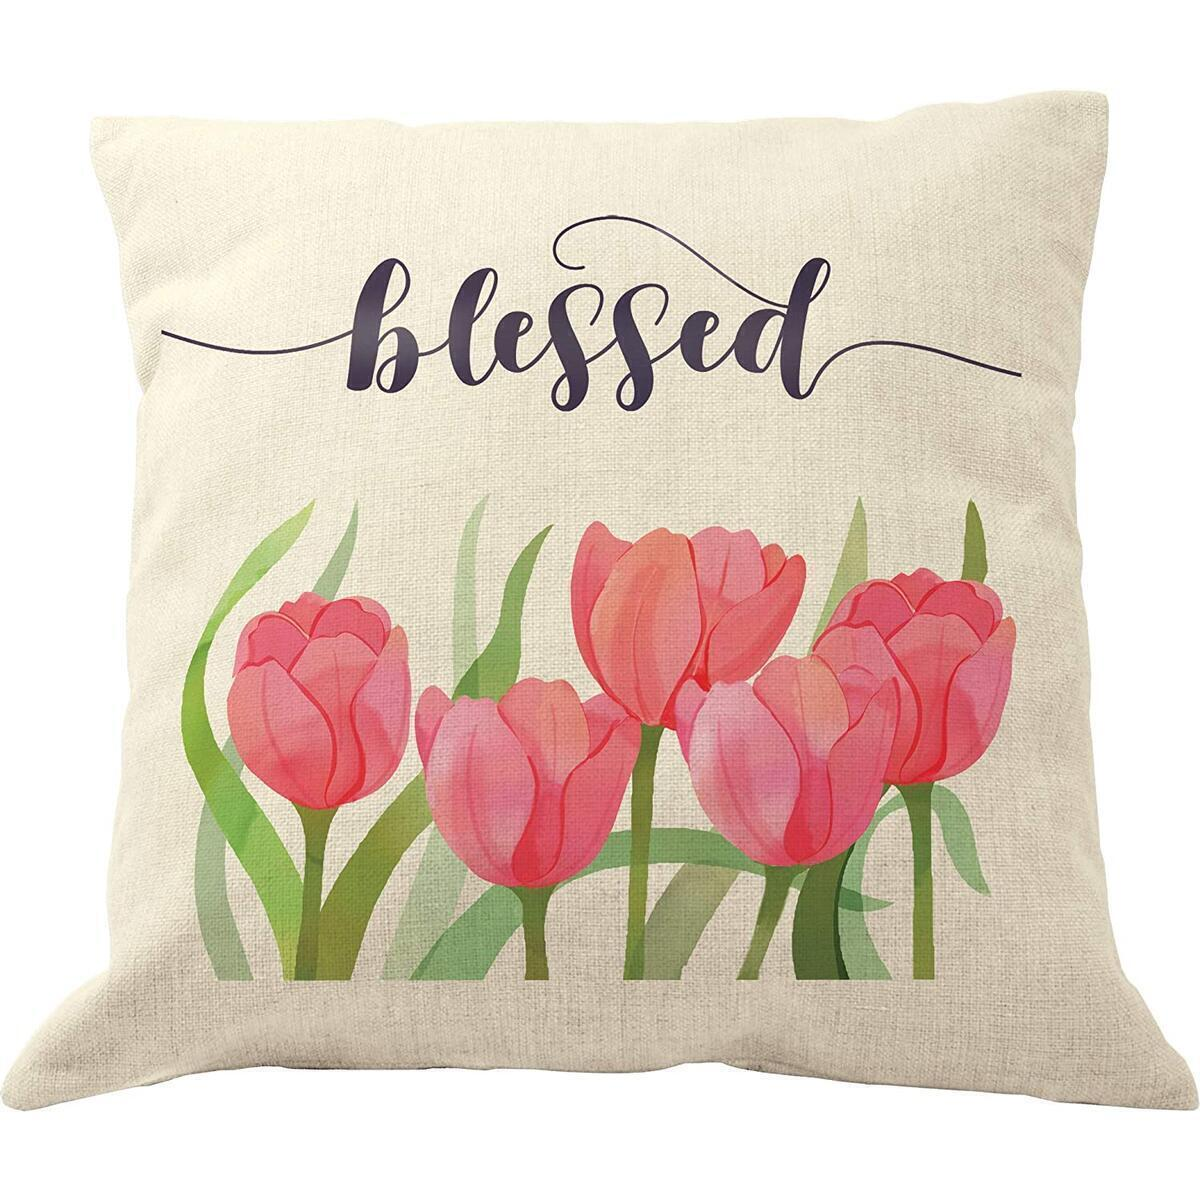 DrupsCo Blessed Pillow Cover - 18 x 18 Blessed Throw Pillow, Blessed Pillow